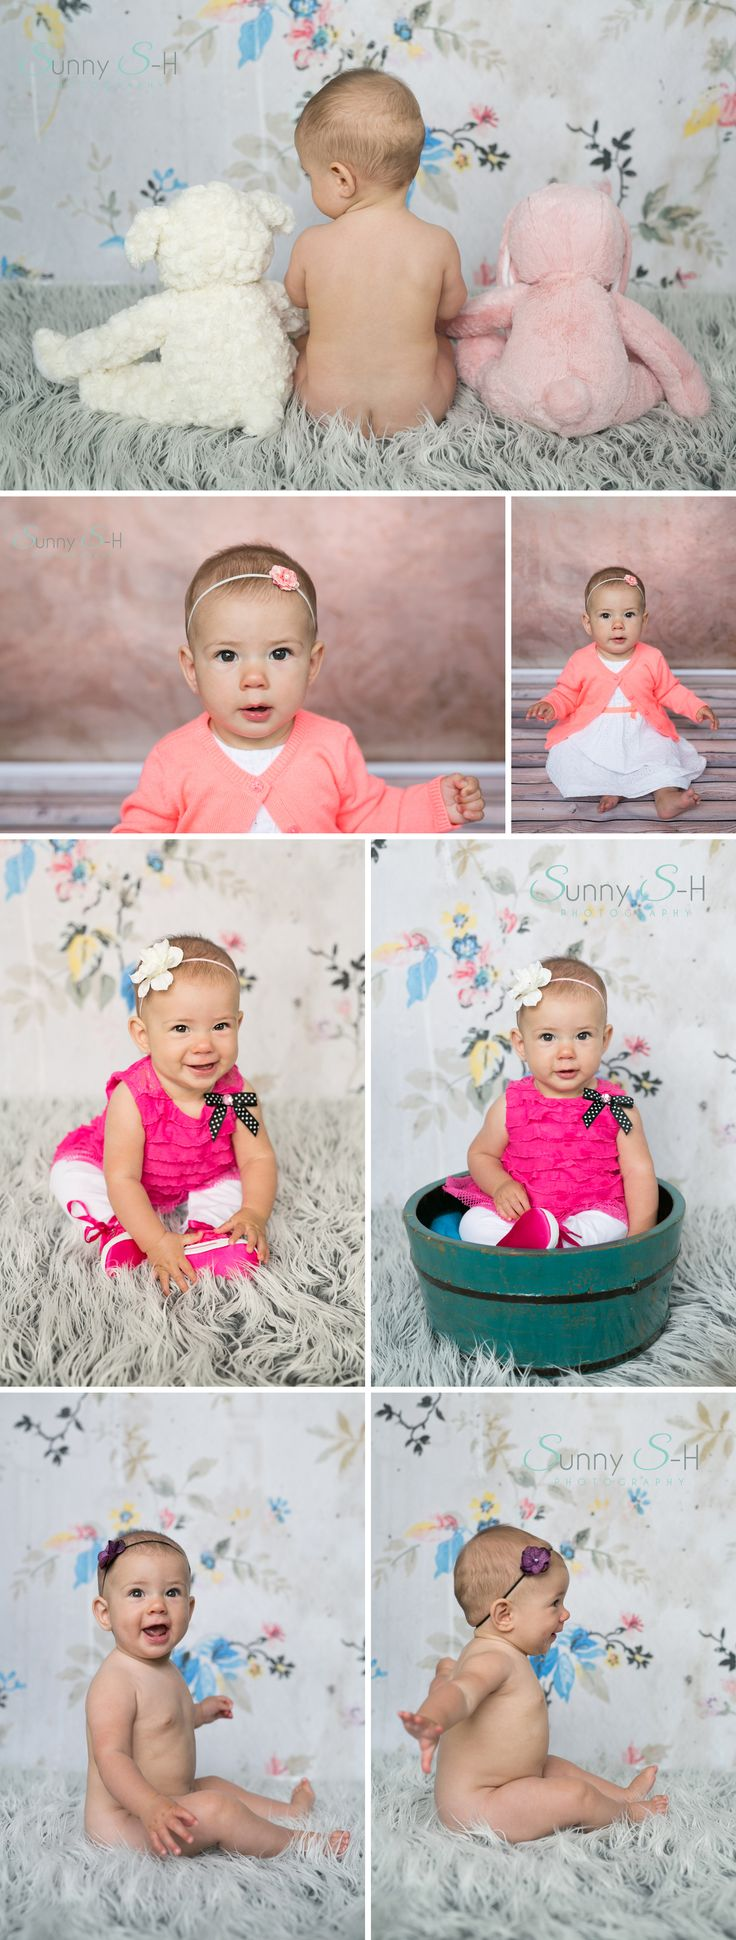 6 month baby stages photo shoot for a girl.  In home and natural light photography.  Sunny S-H Photography - Winnipeg